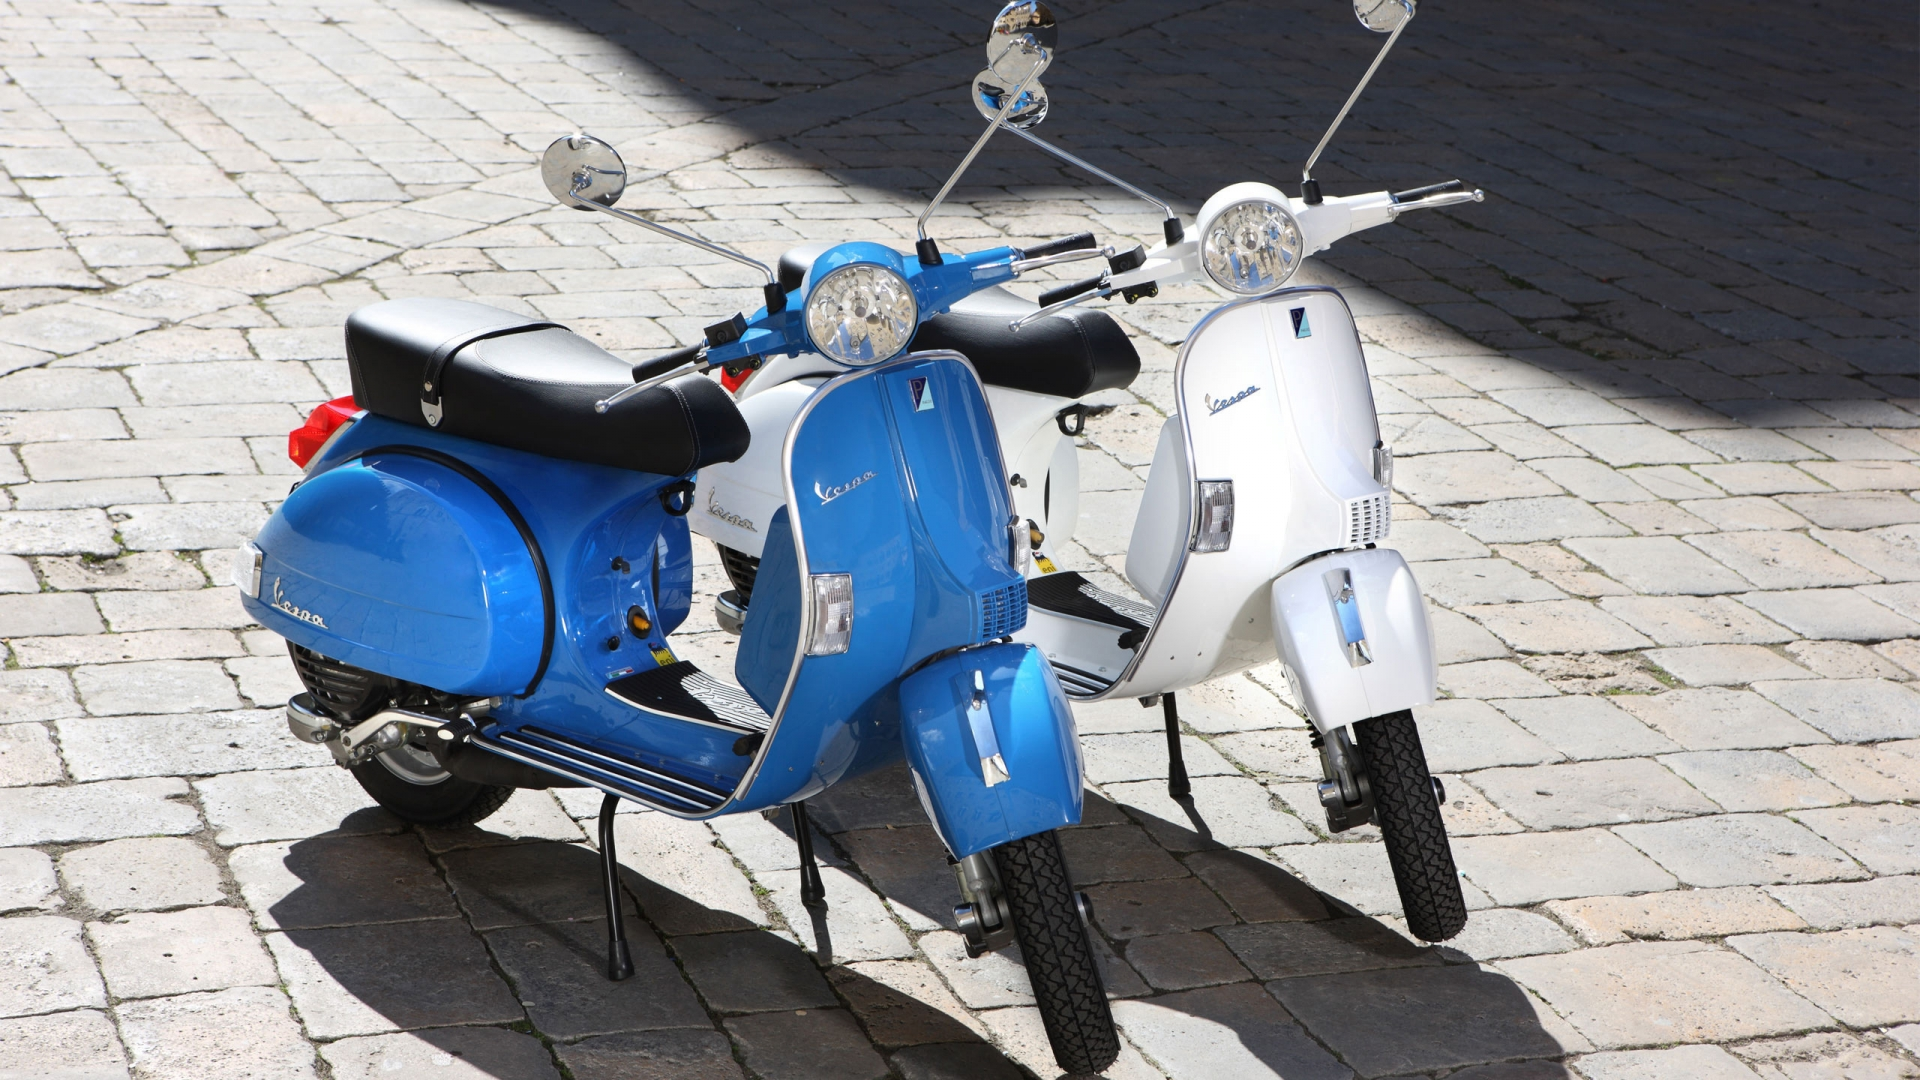 Vespa PX 150A 2011 for 1920 x 1080 HDTV 1080p resolution